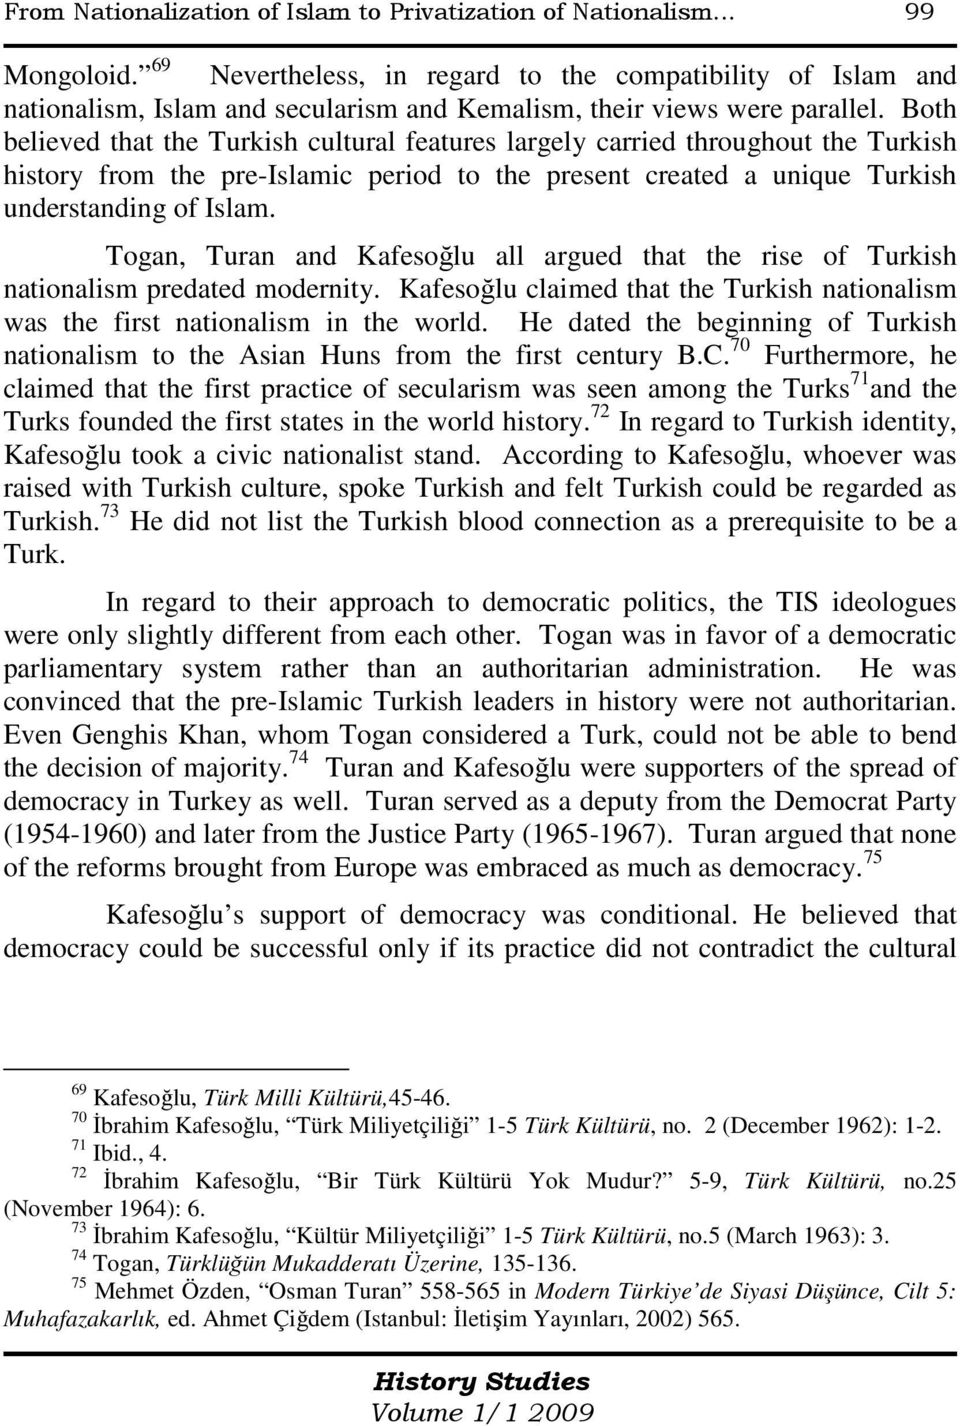 Both believed that the Turkish cultural features largely carried throughout the Turkish history from the pre-islamic period to the present created a unique Turkish understanding of Islam.